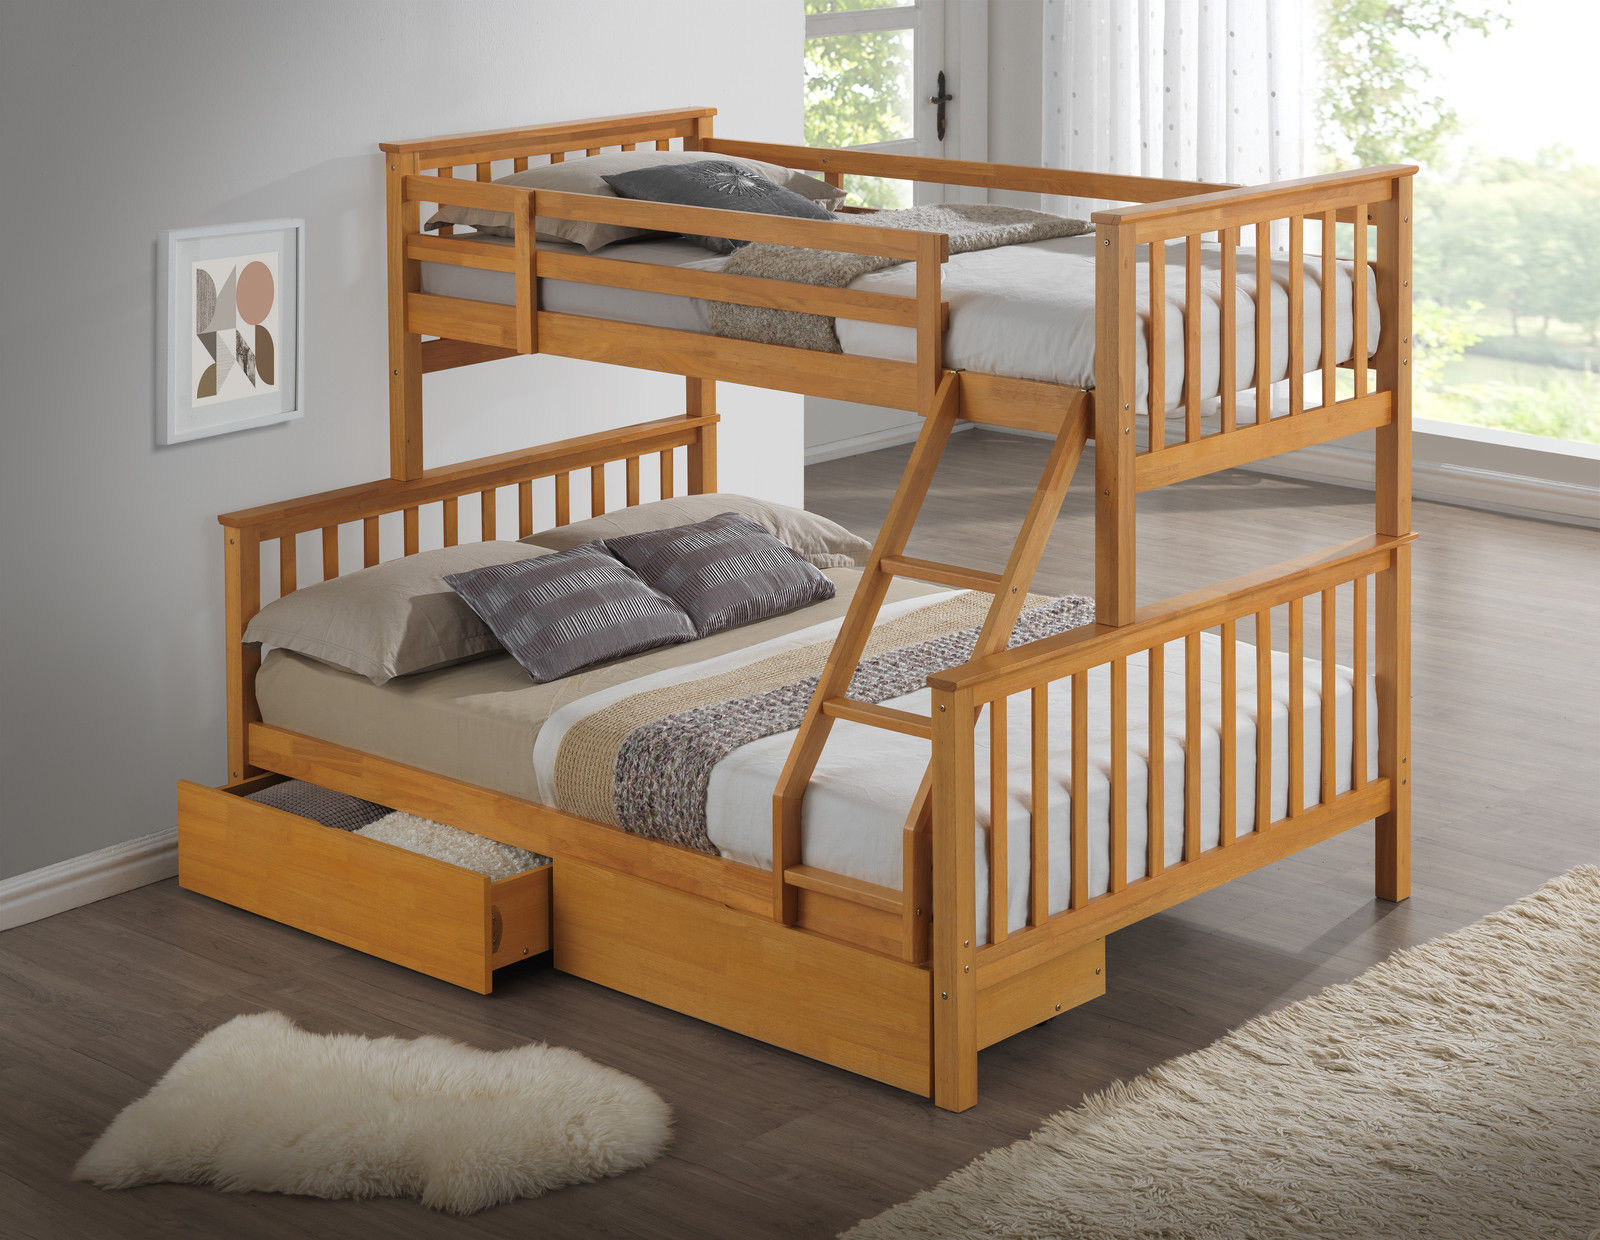 Beech triple wooden bunk bed childrens kids for Toddler bunk beds